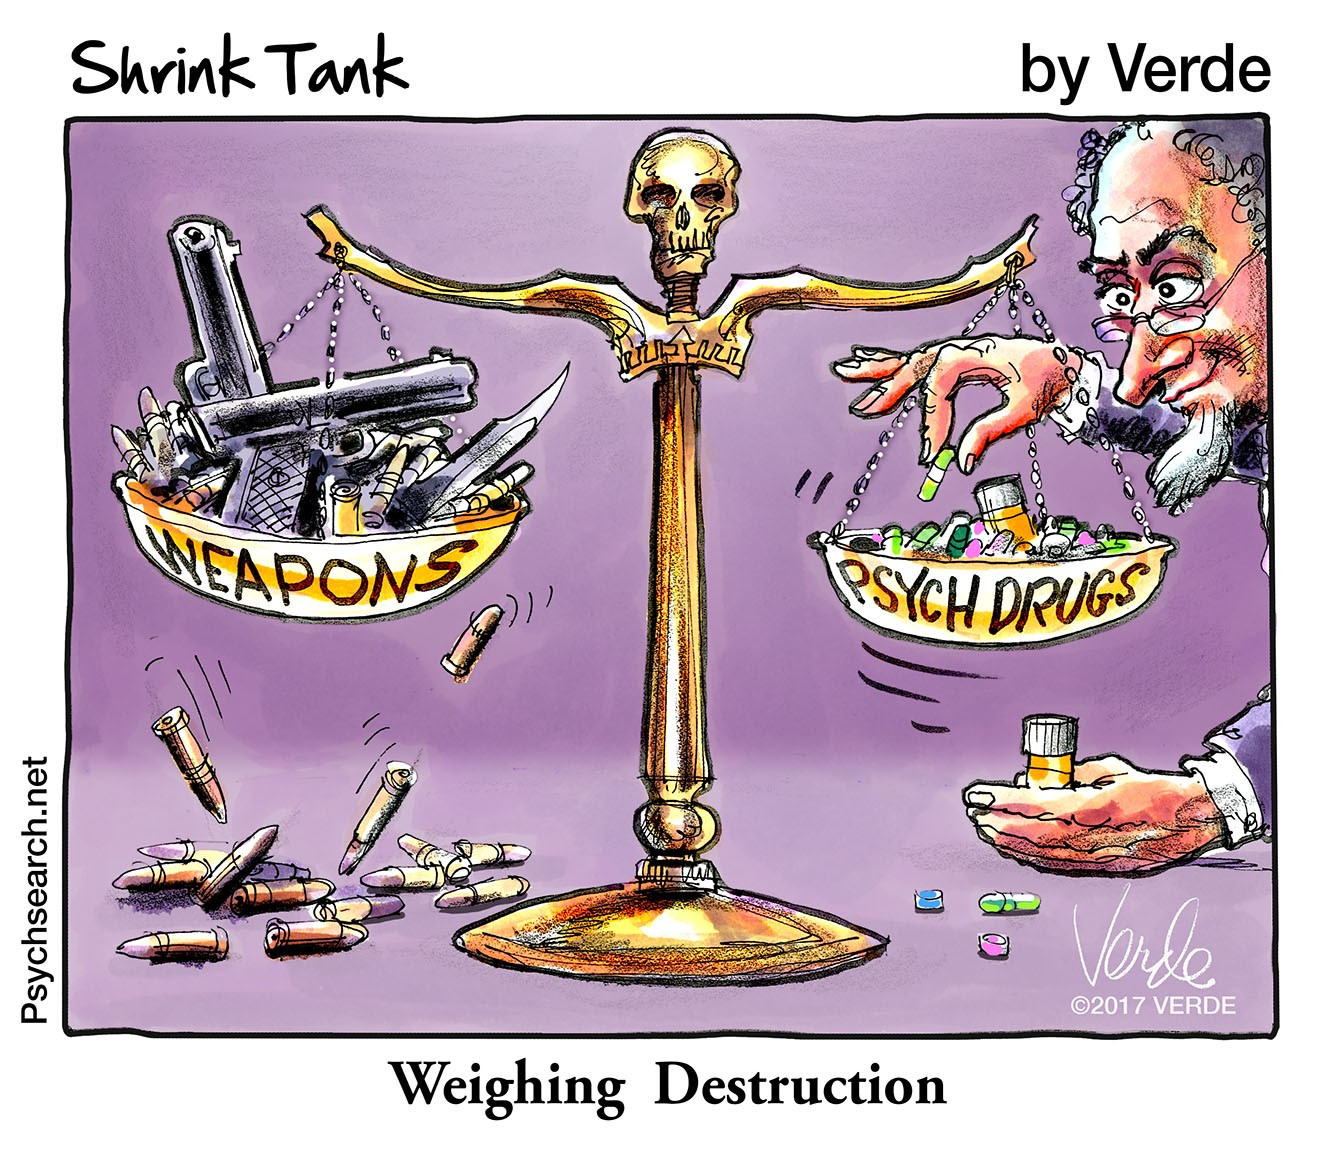 WEIGHING DESTRUCTION